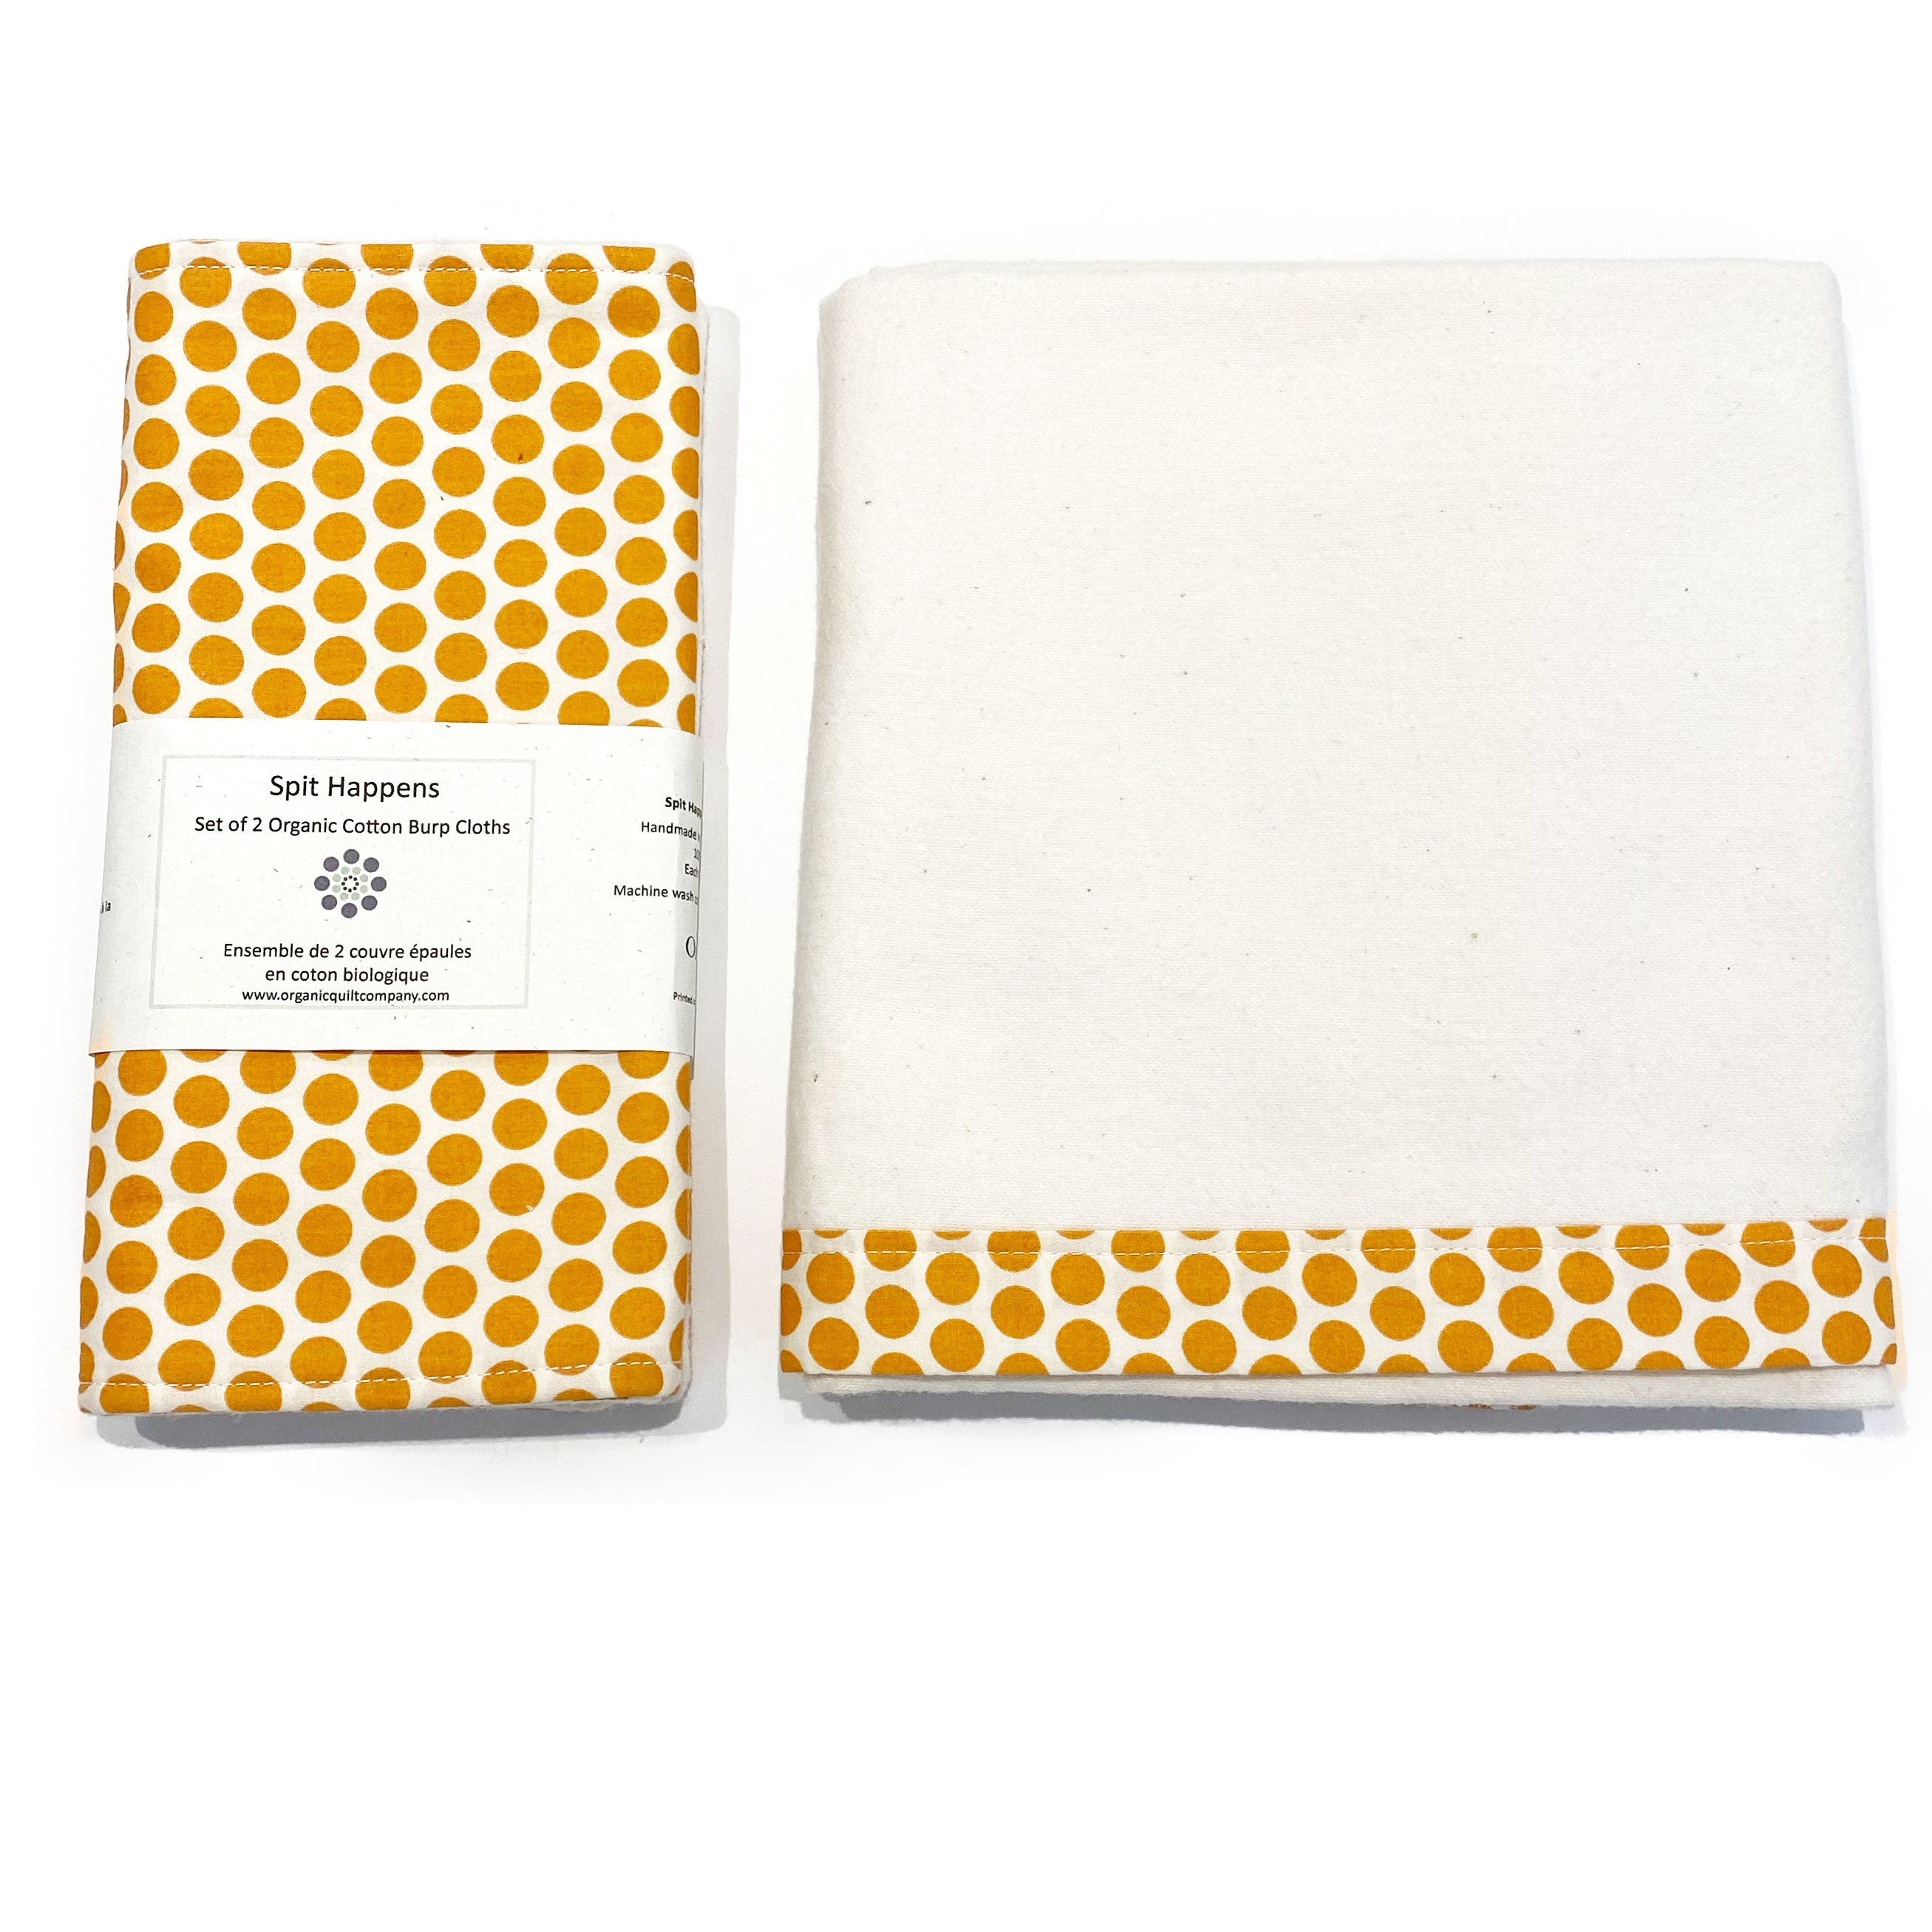 Organic Swaddle and Burp Cloths set at Bonjour Baby Baskets